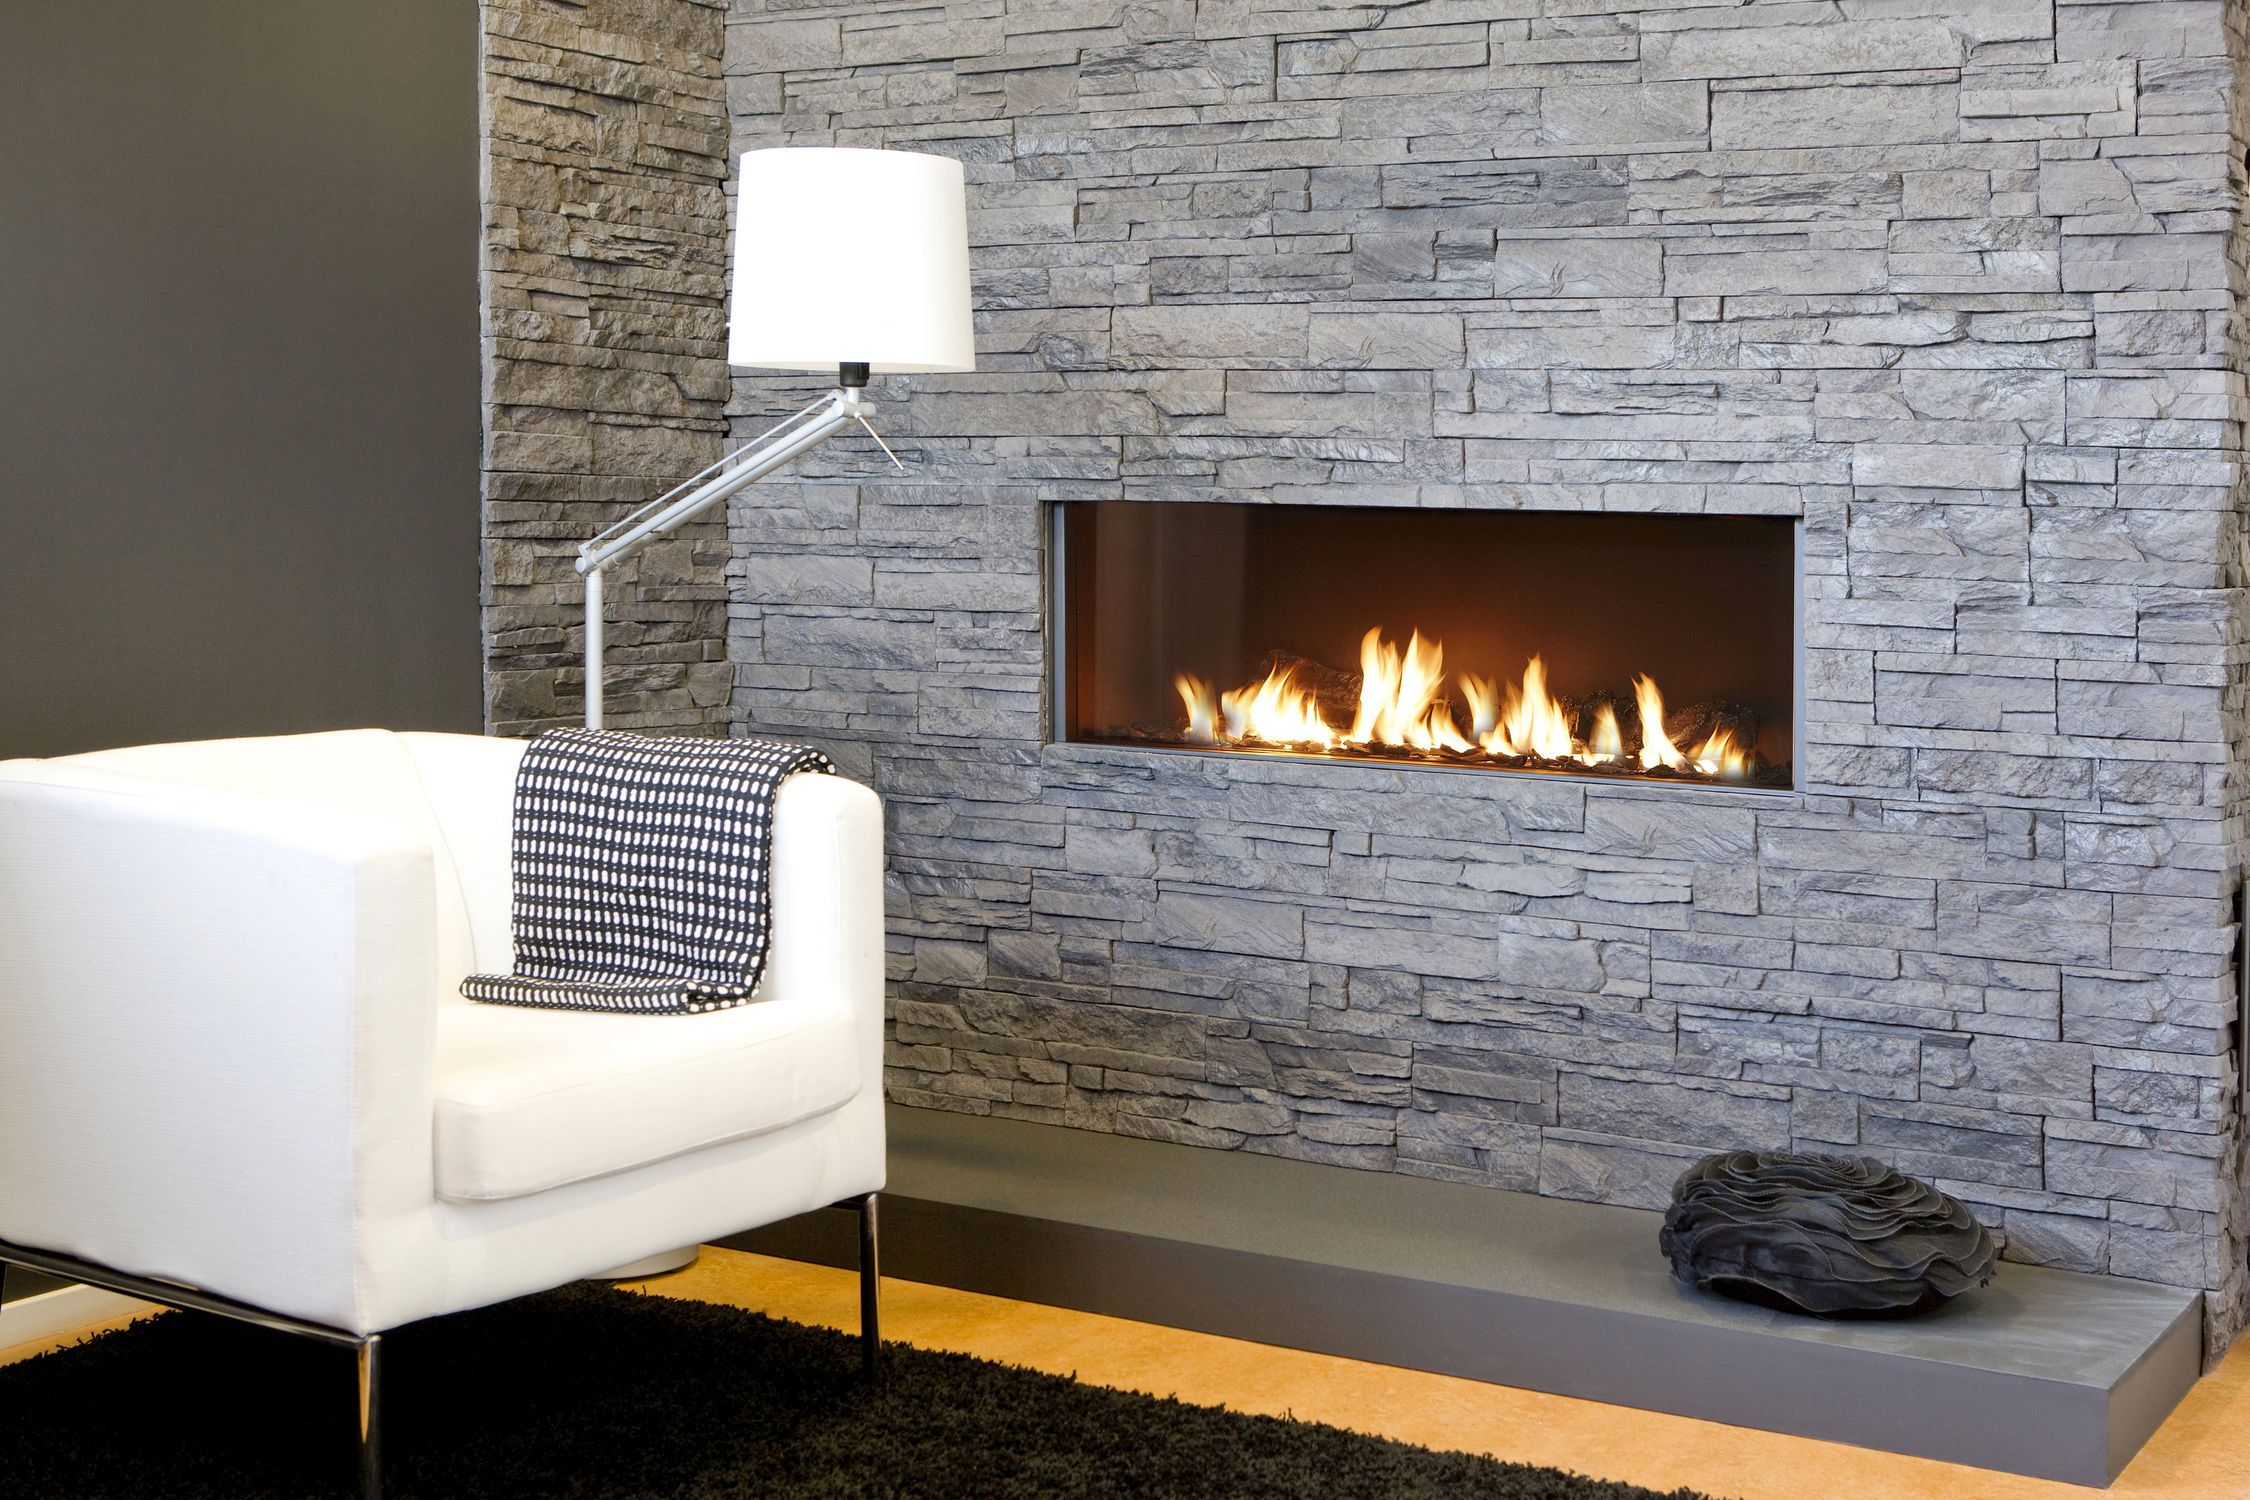 Corner Gas Fireplace Design Ideas find this pin and more on fireplace ideas the corner gas fireplace Contemporary Gas Fireplace Designs Built In Fireplace Modern Design Image Collection Contemporary Gas